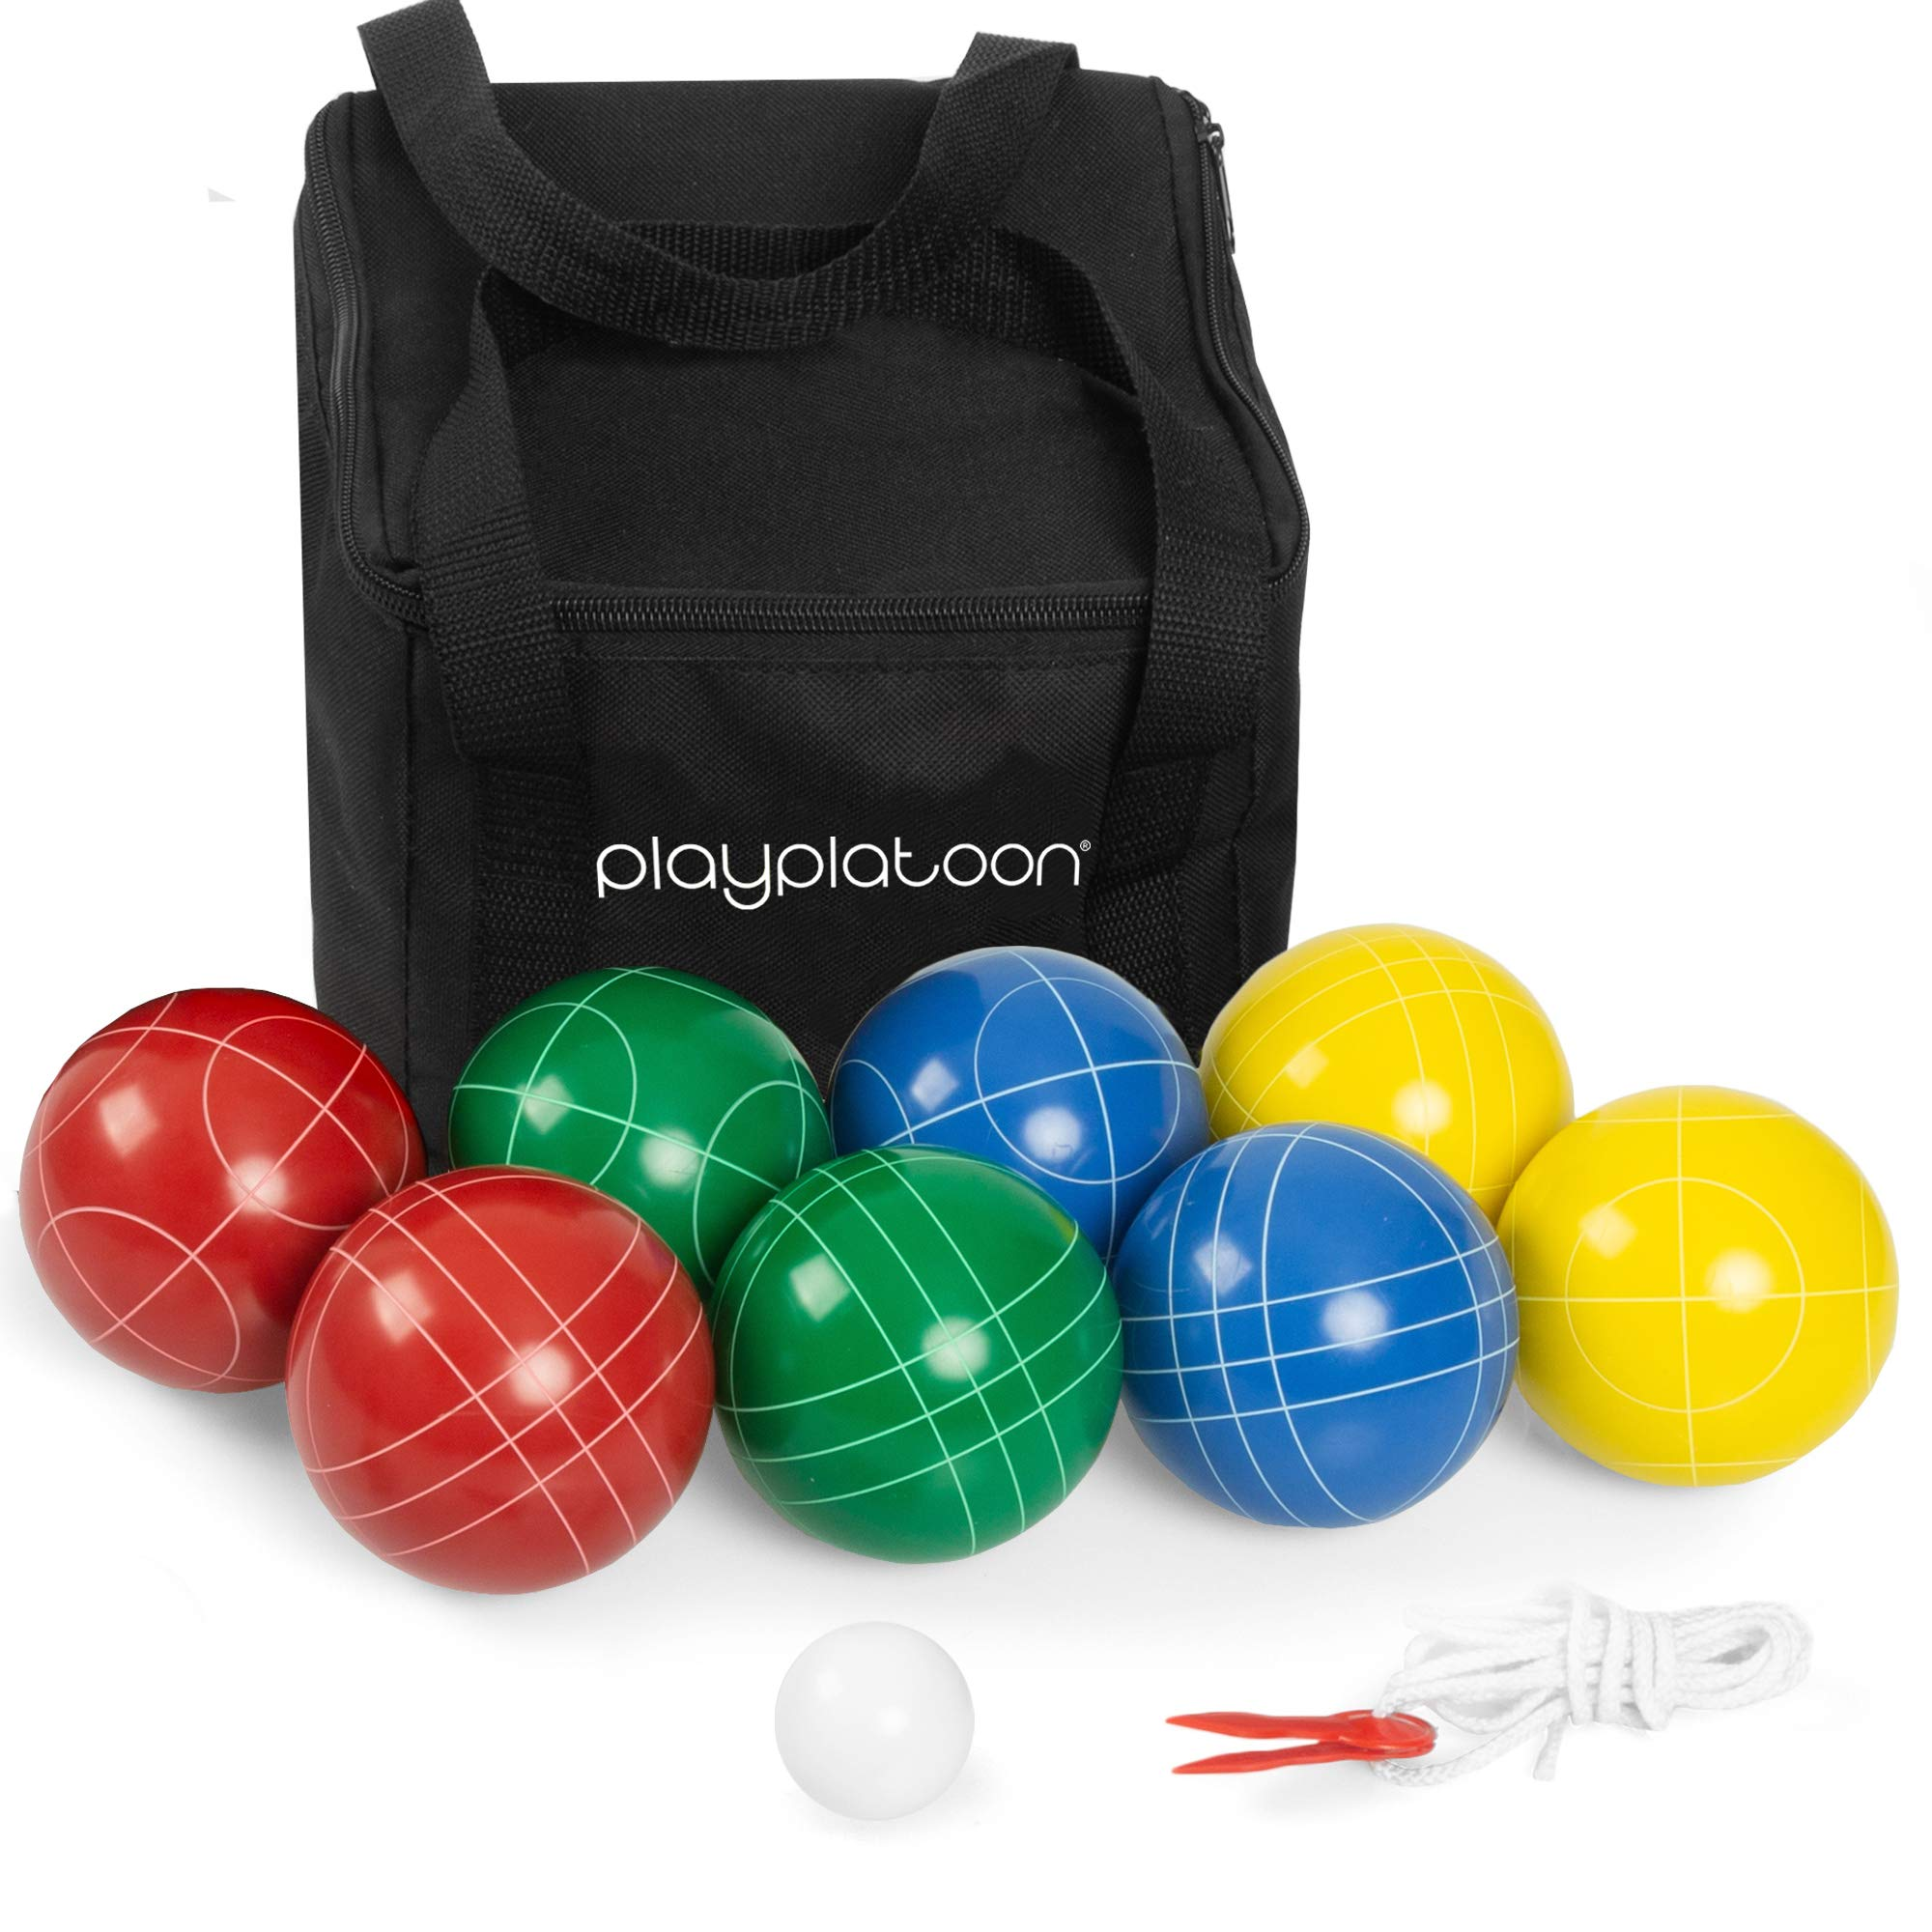 Play Platoon Bocce Ball Set with 8 Premium Resin Bocce Balls, Pallino, Carry Bag & Measuring Rope (4 to 8 Person Bocce Ball Set) by Play Platoon